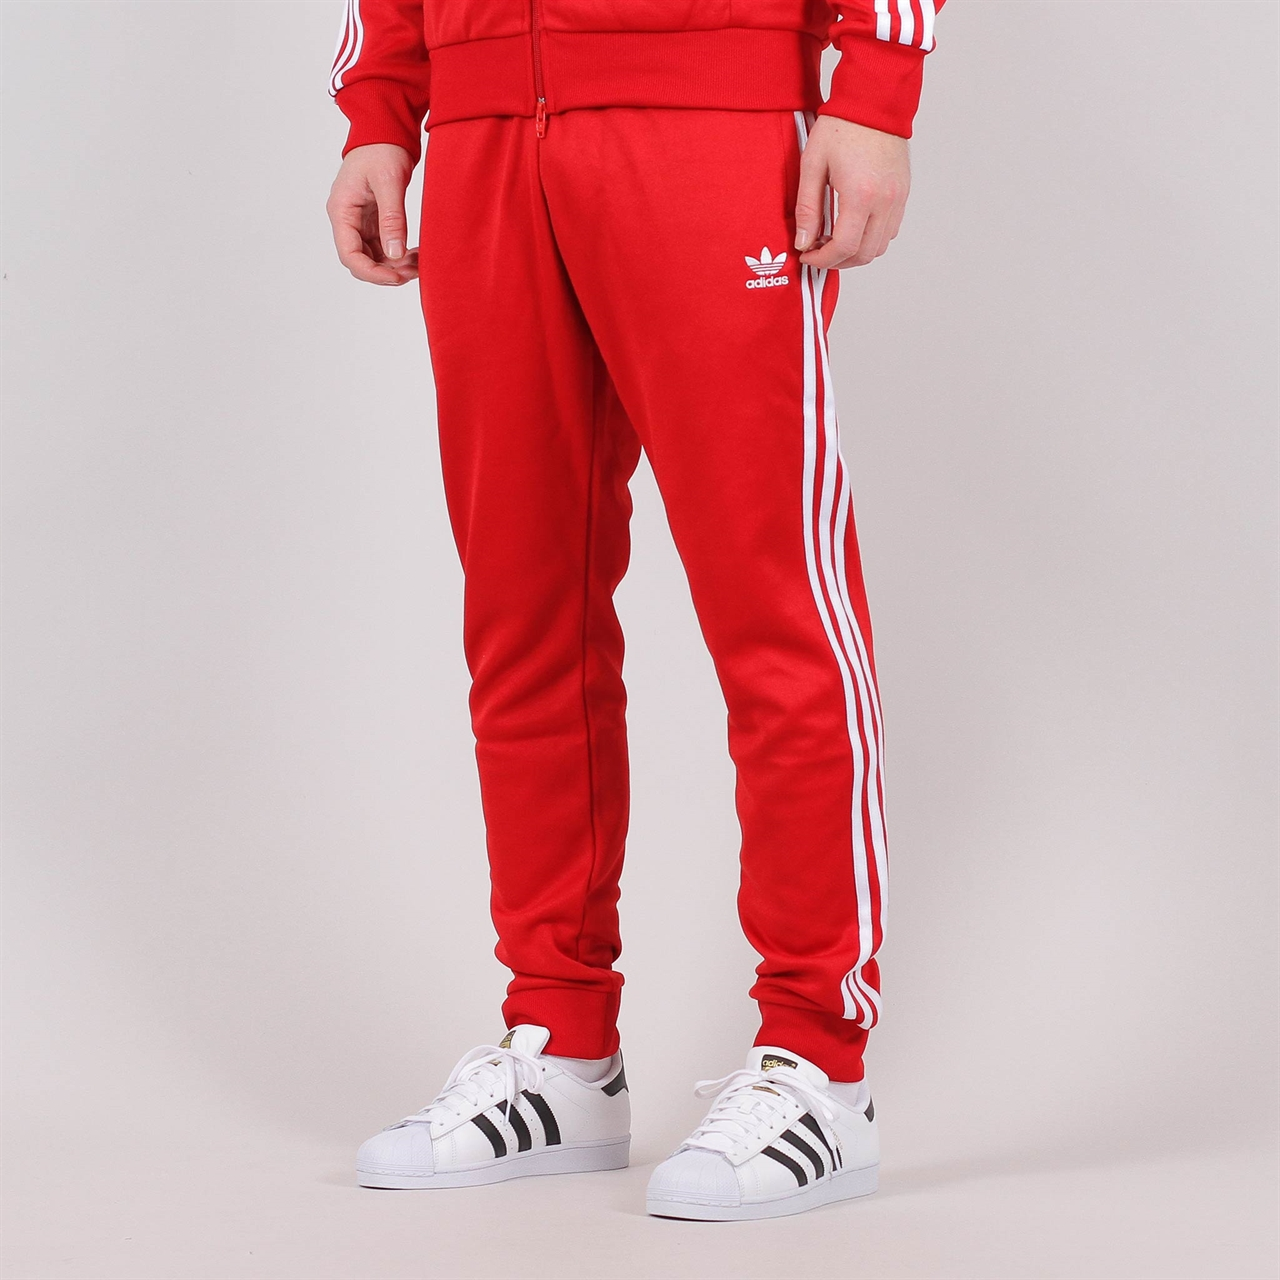 4e509269eec6 Shelta - Adidas Originals Superstar Trackpant Red (DV1534)